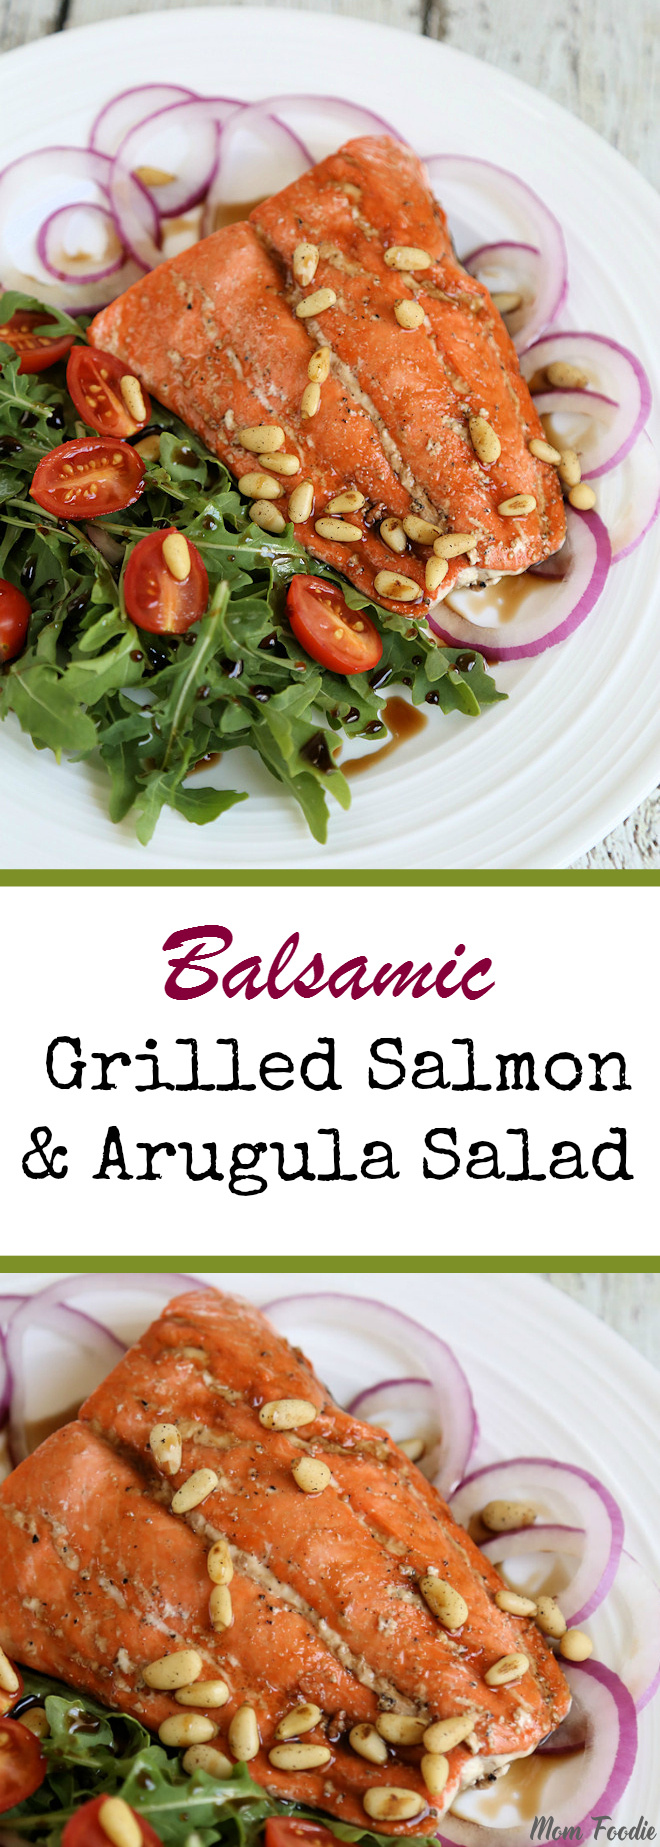 Balsamic Grilled Salmon & Arugula Salad Recipe